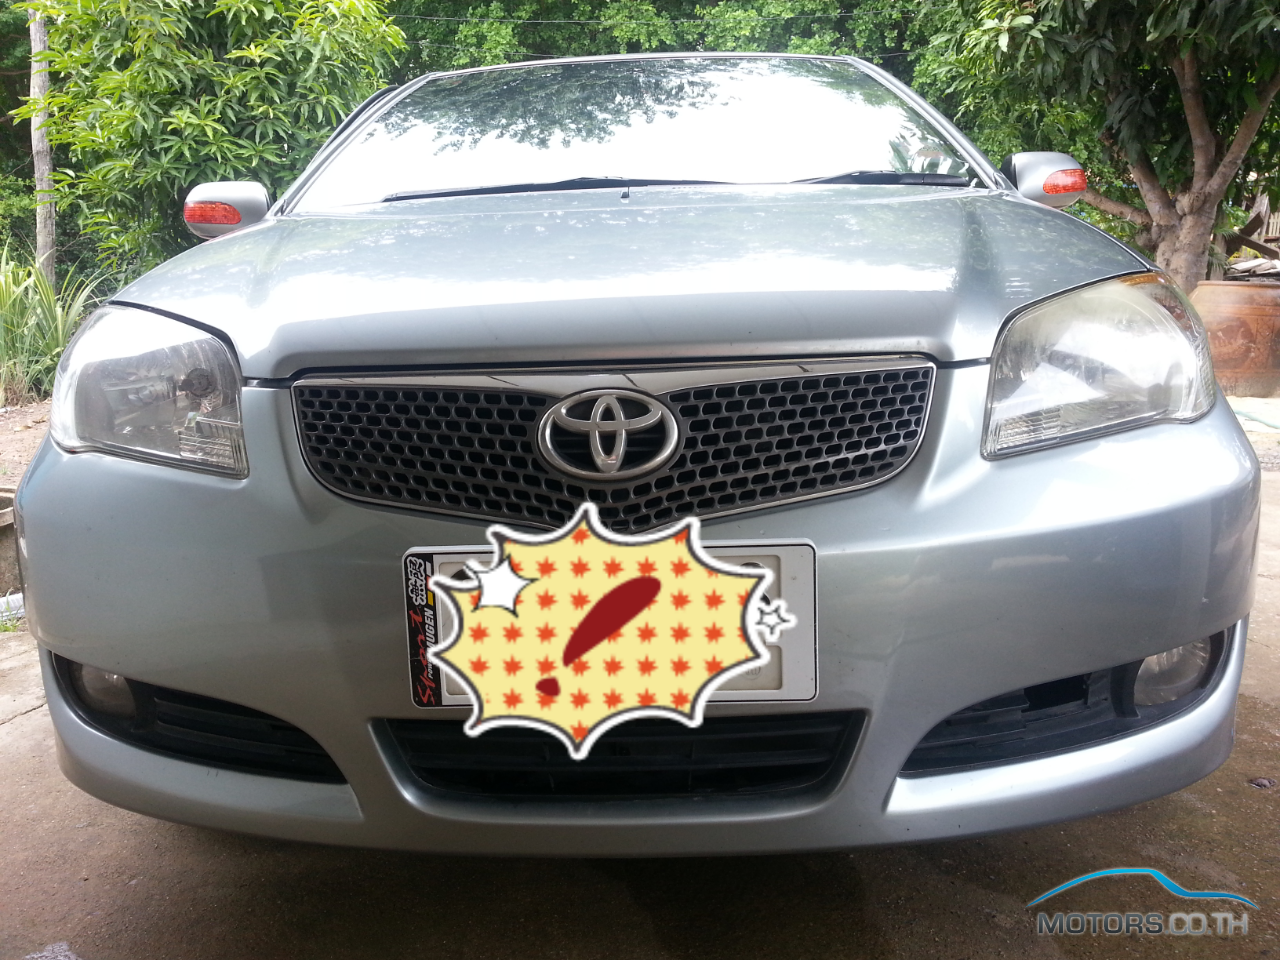 New, Used & Secondhand Cars TOYOTA SOLUNA (2006)